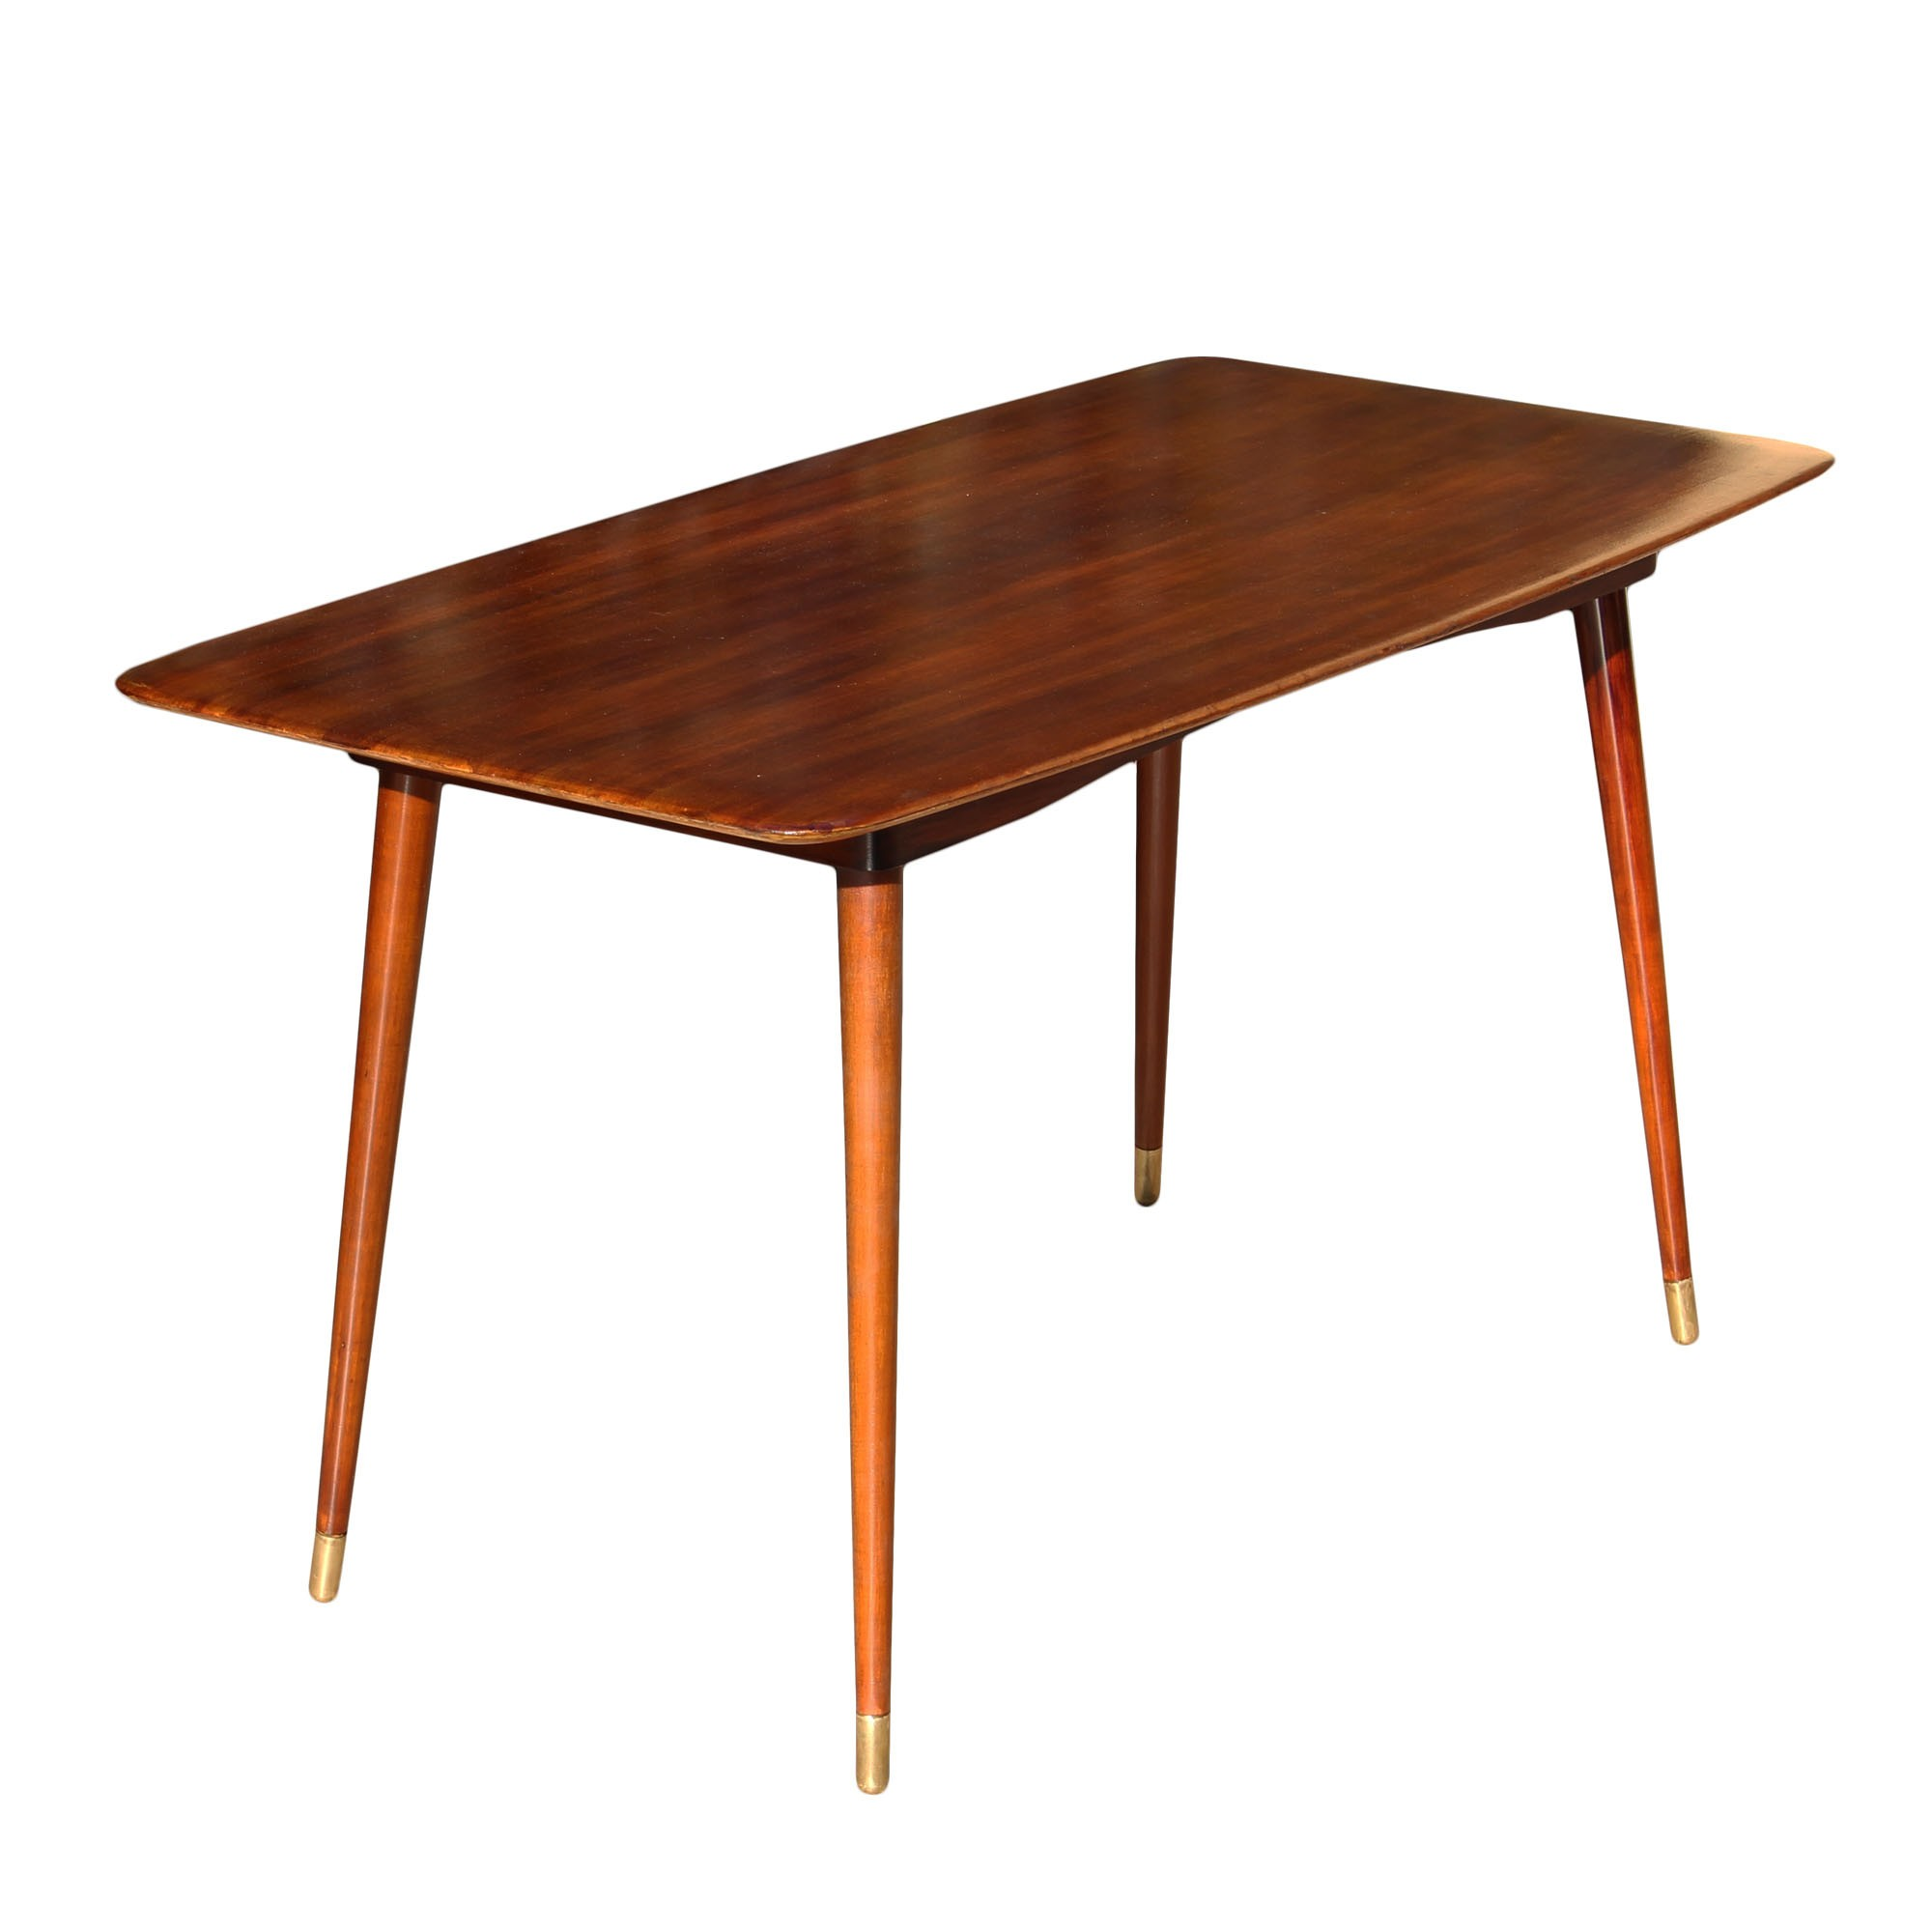 Wooden Coffee Table With Tapered Legs, Germany